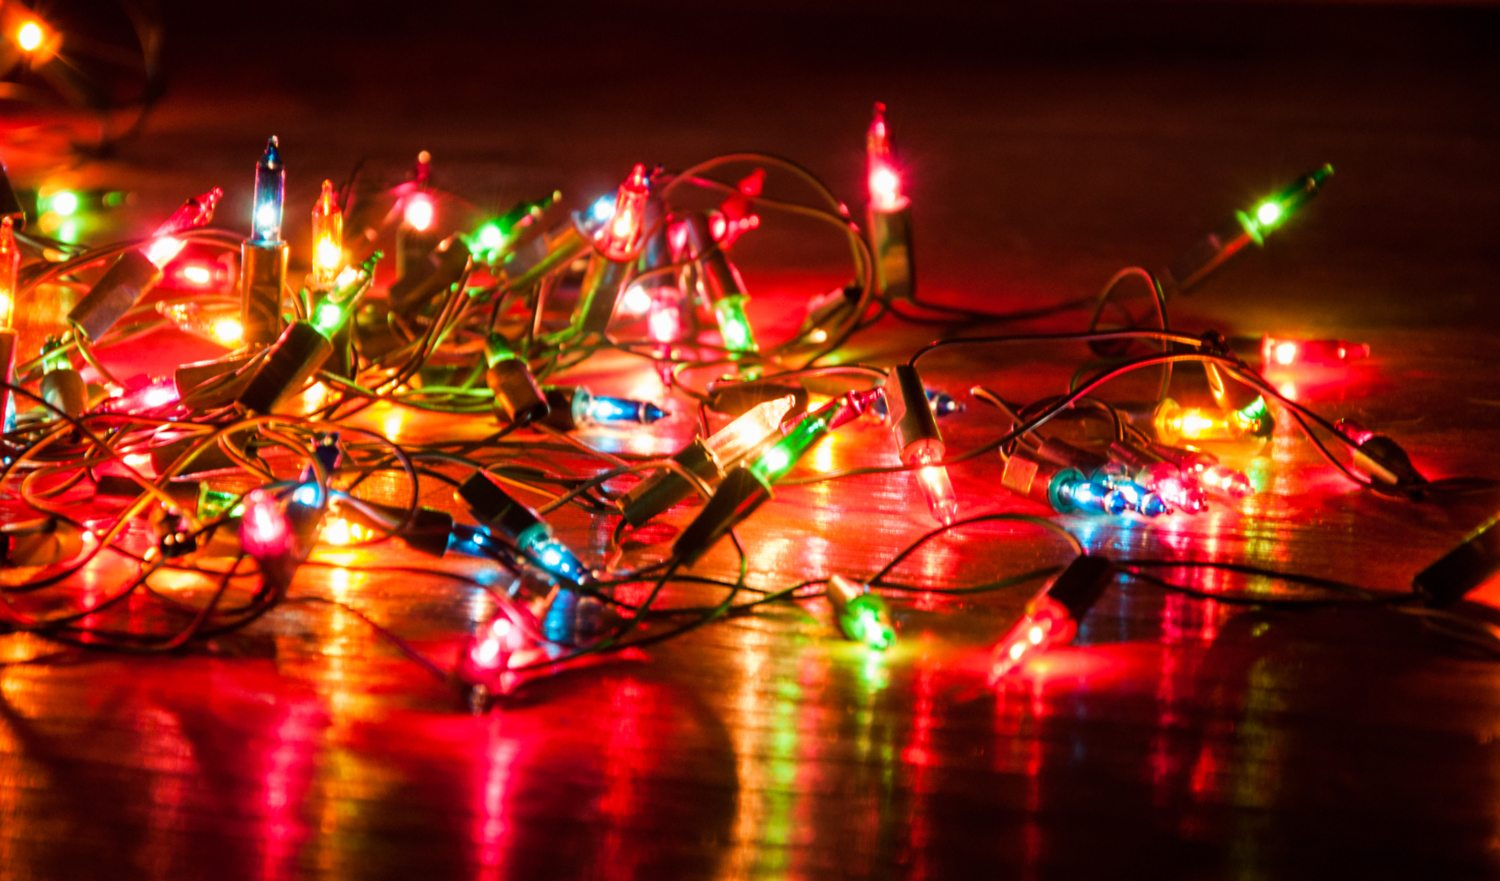 Christmas lights on the floor